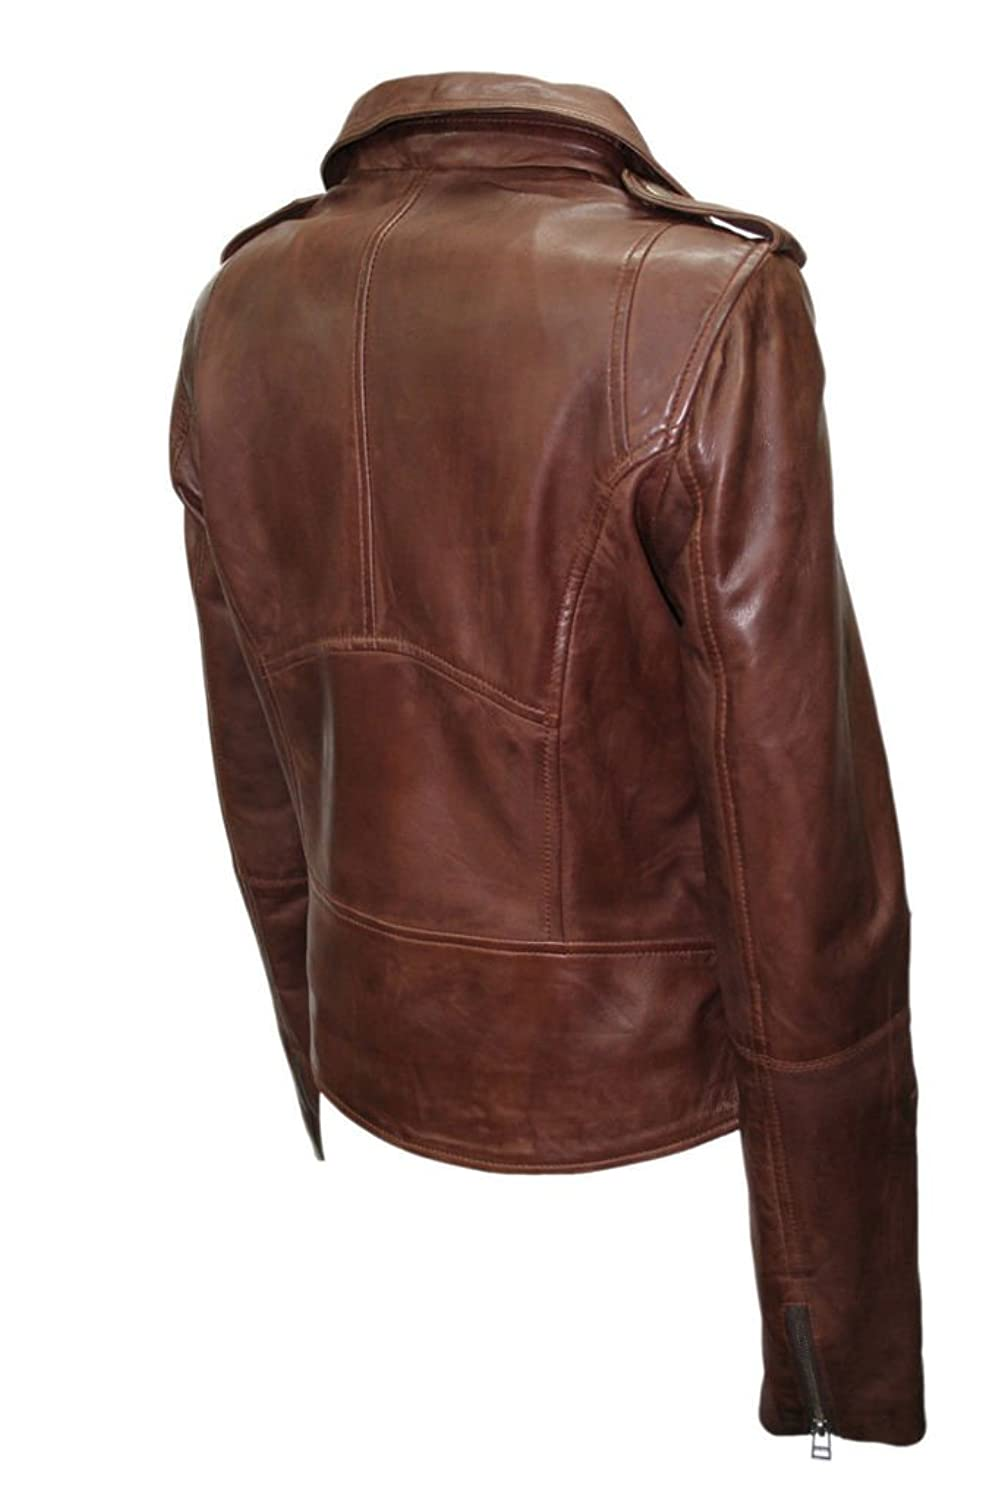 Ladies Brown Casual Retro Brando Soft Nappa Leather Biker Jacket ...